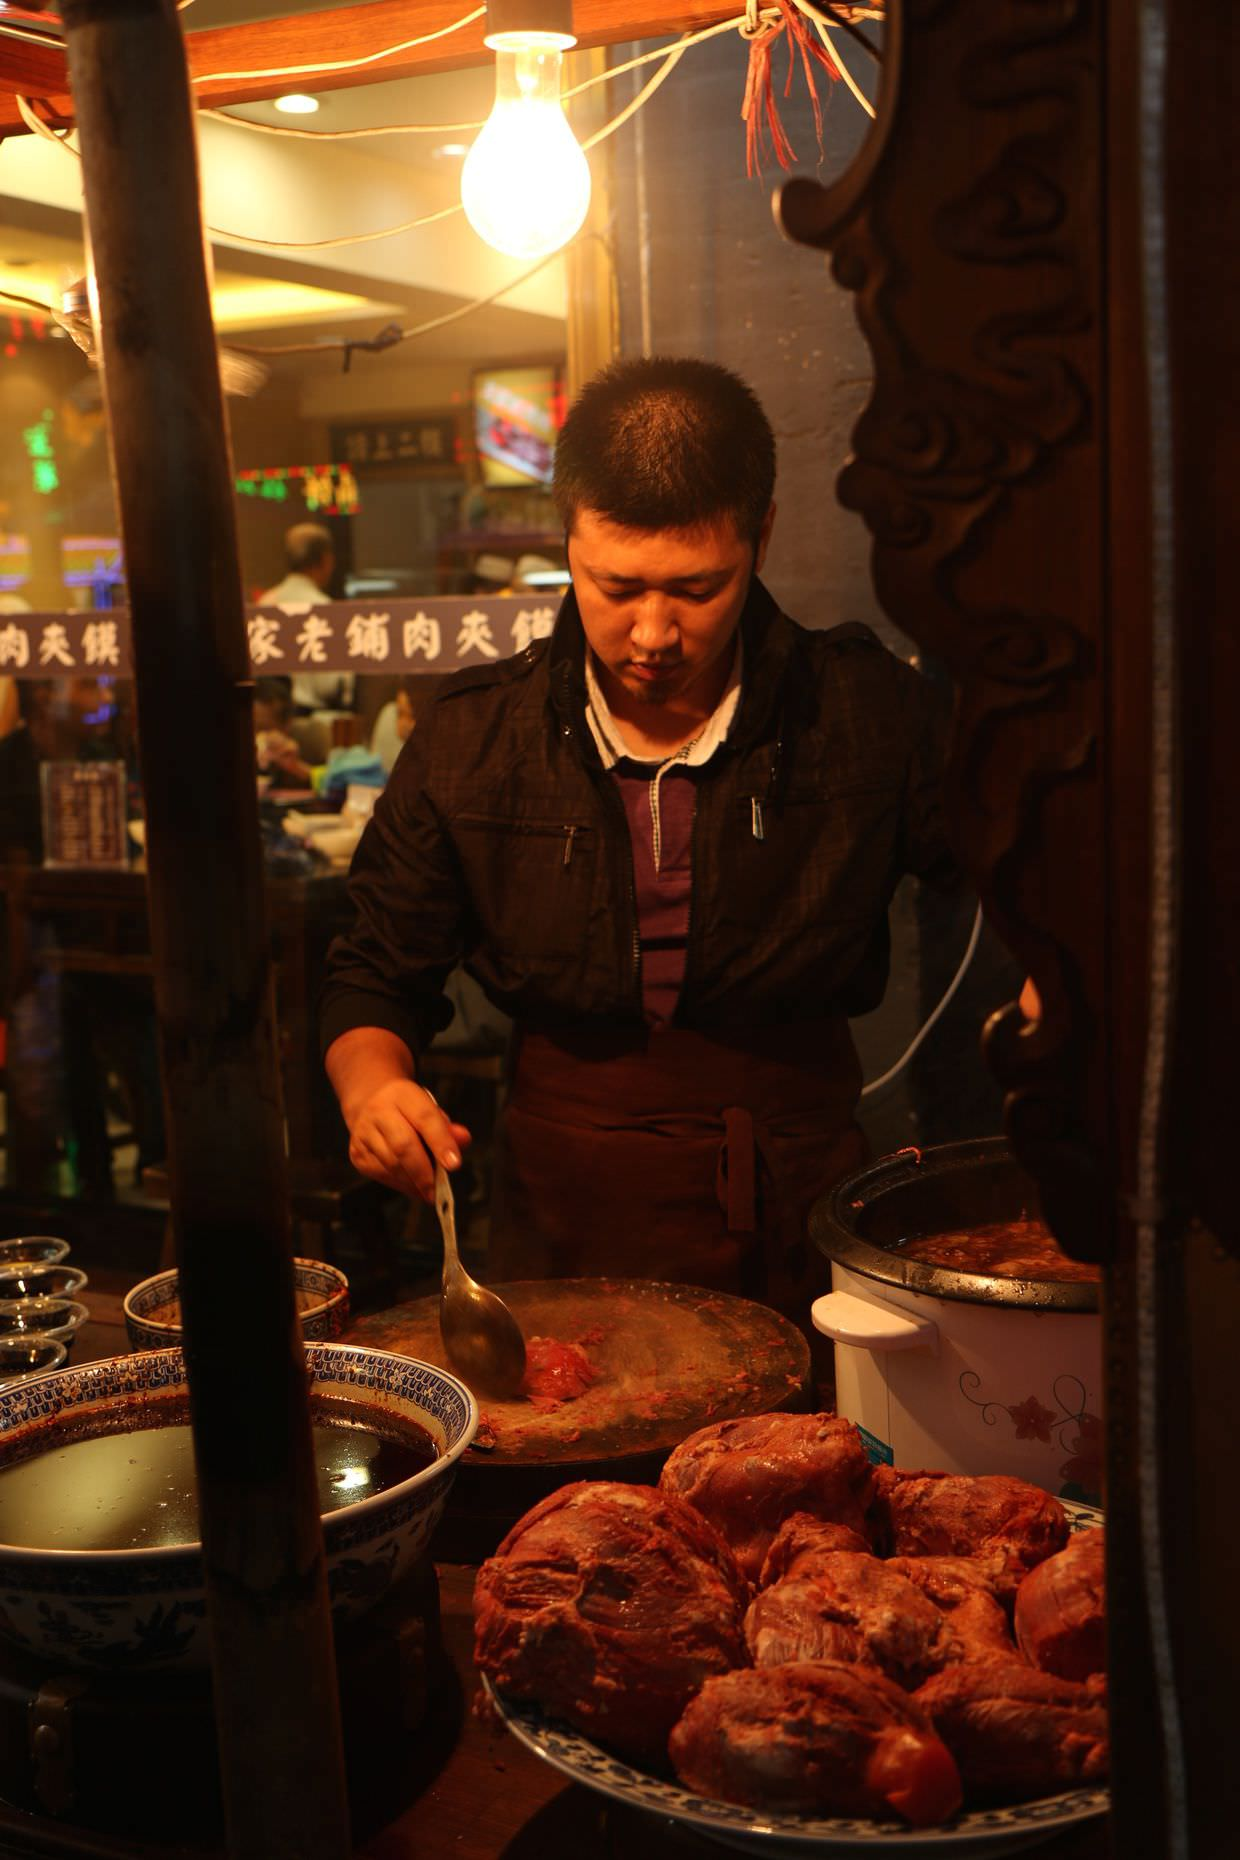 Street-food vendor making our first Rou jia mo, or Chinese hamburger